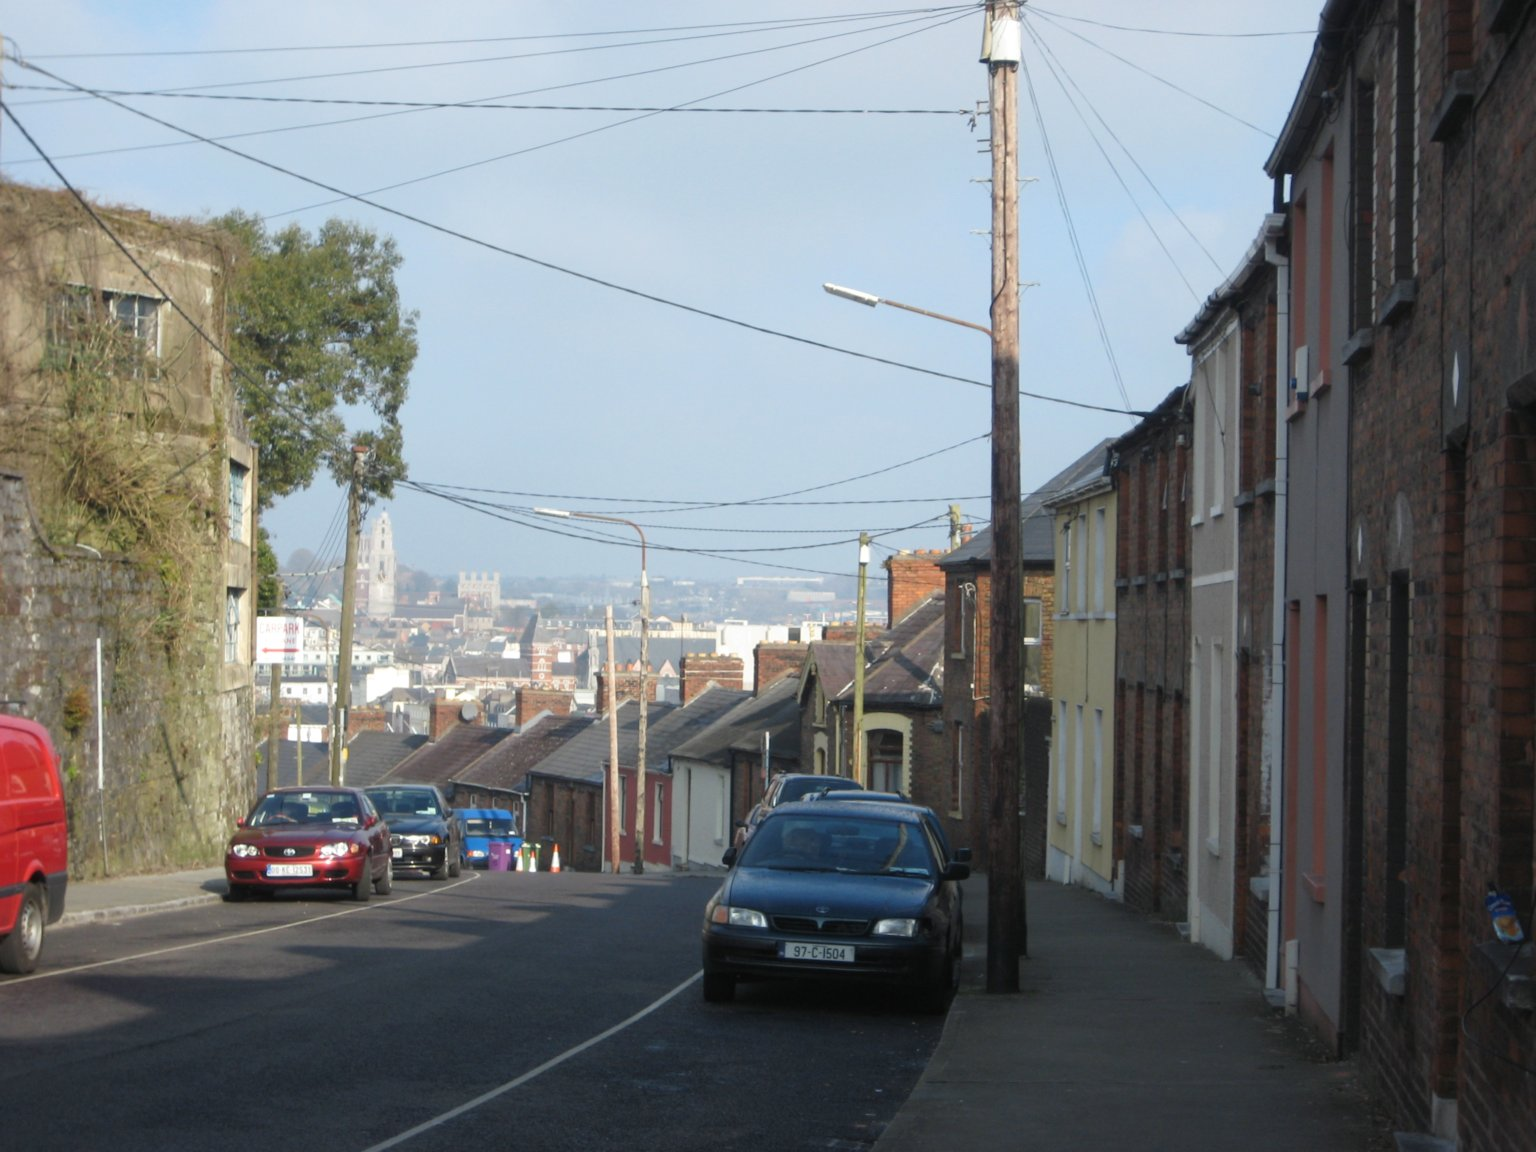 residential area in Cork